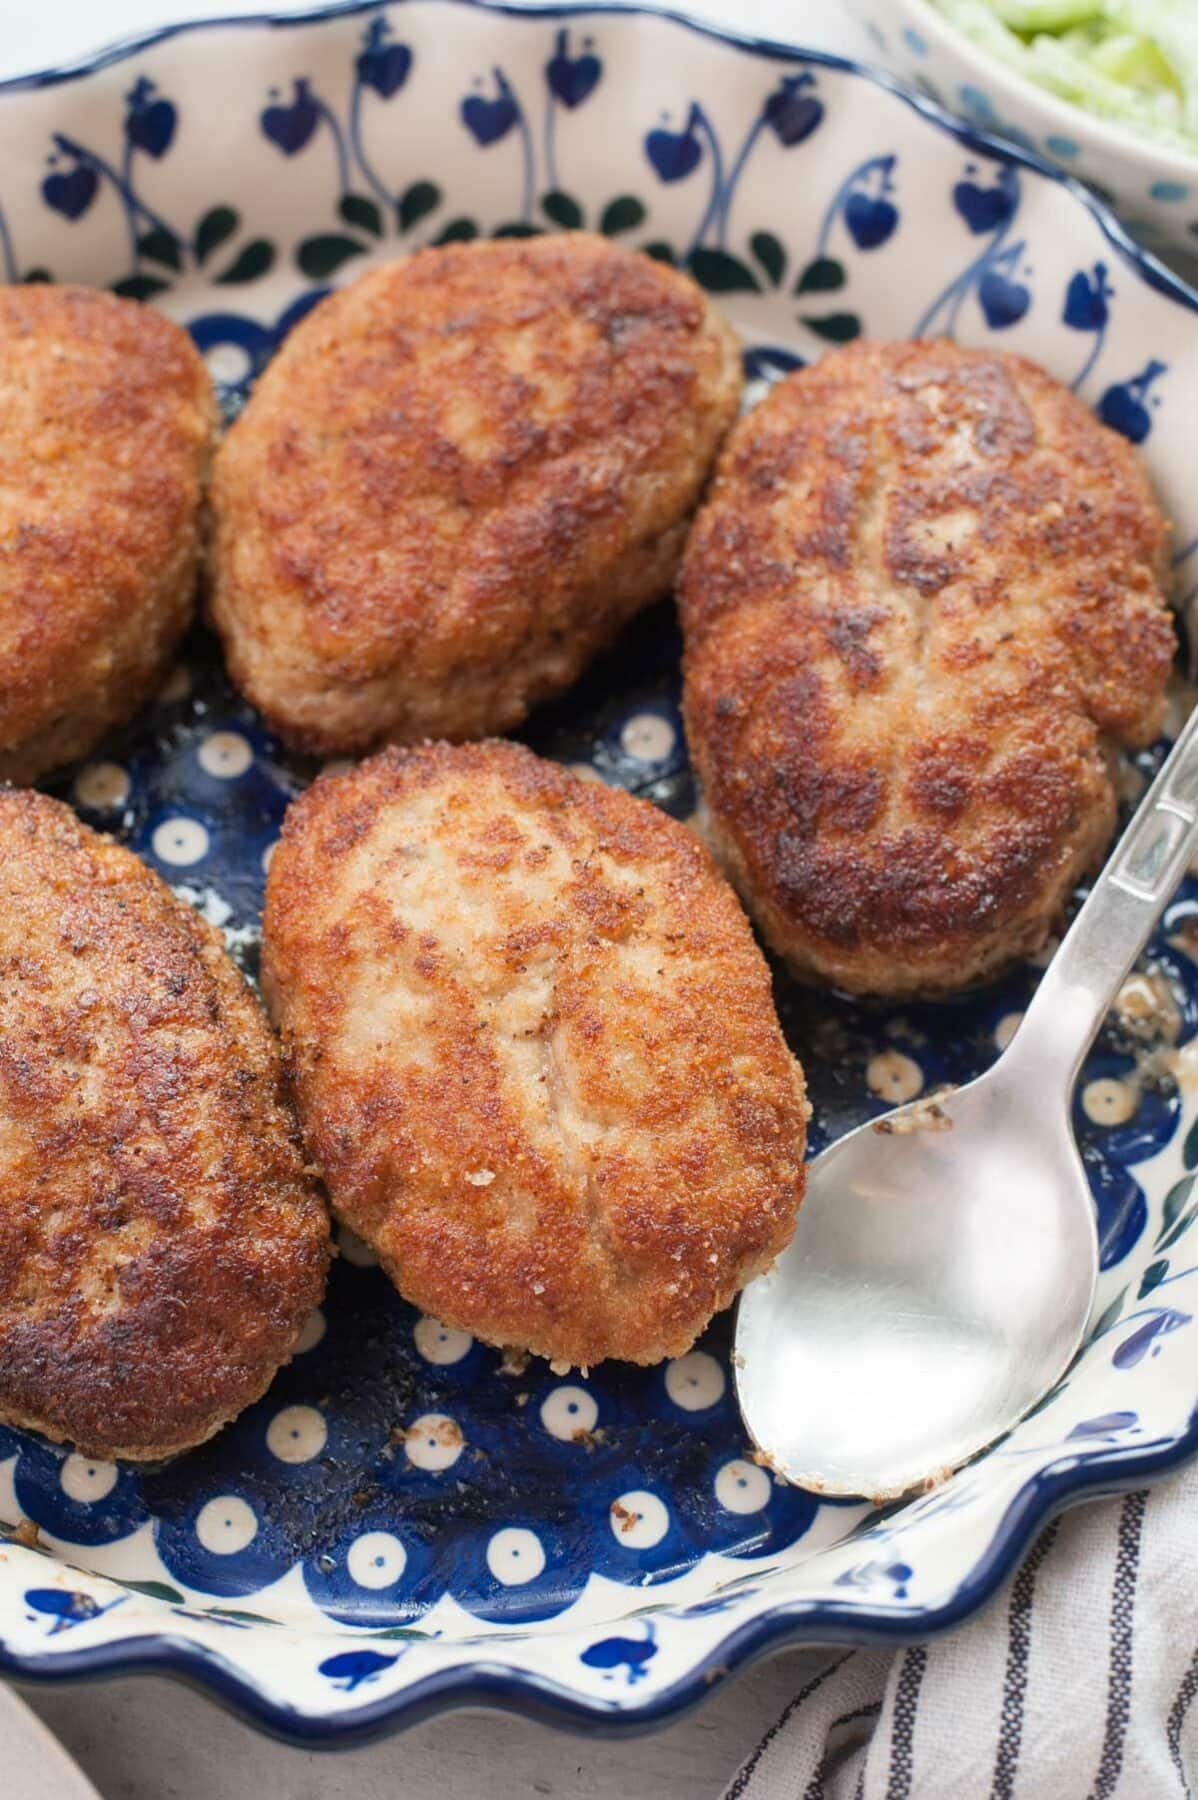 Kotlety mielone (Polish meat patties) in a white-blue baking dish.